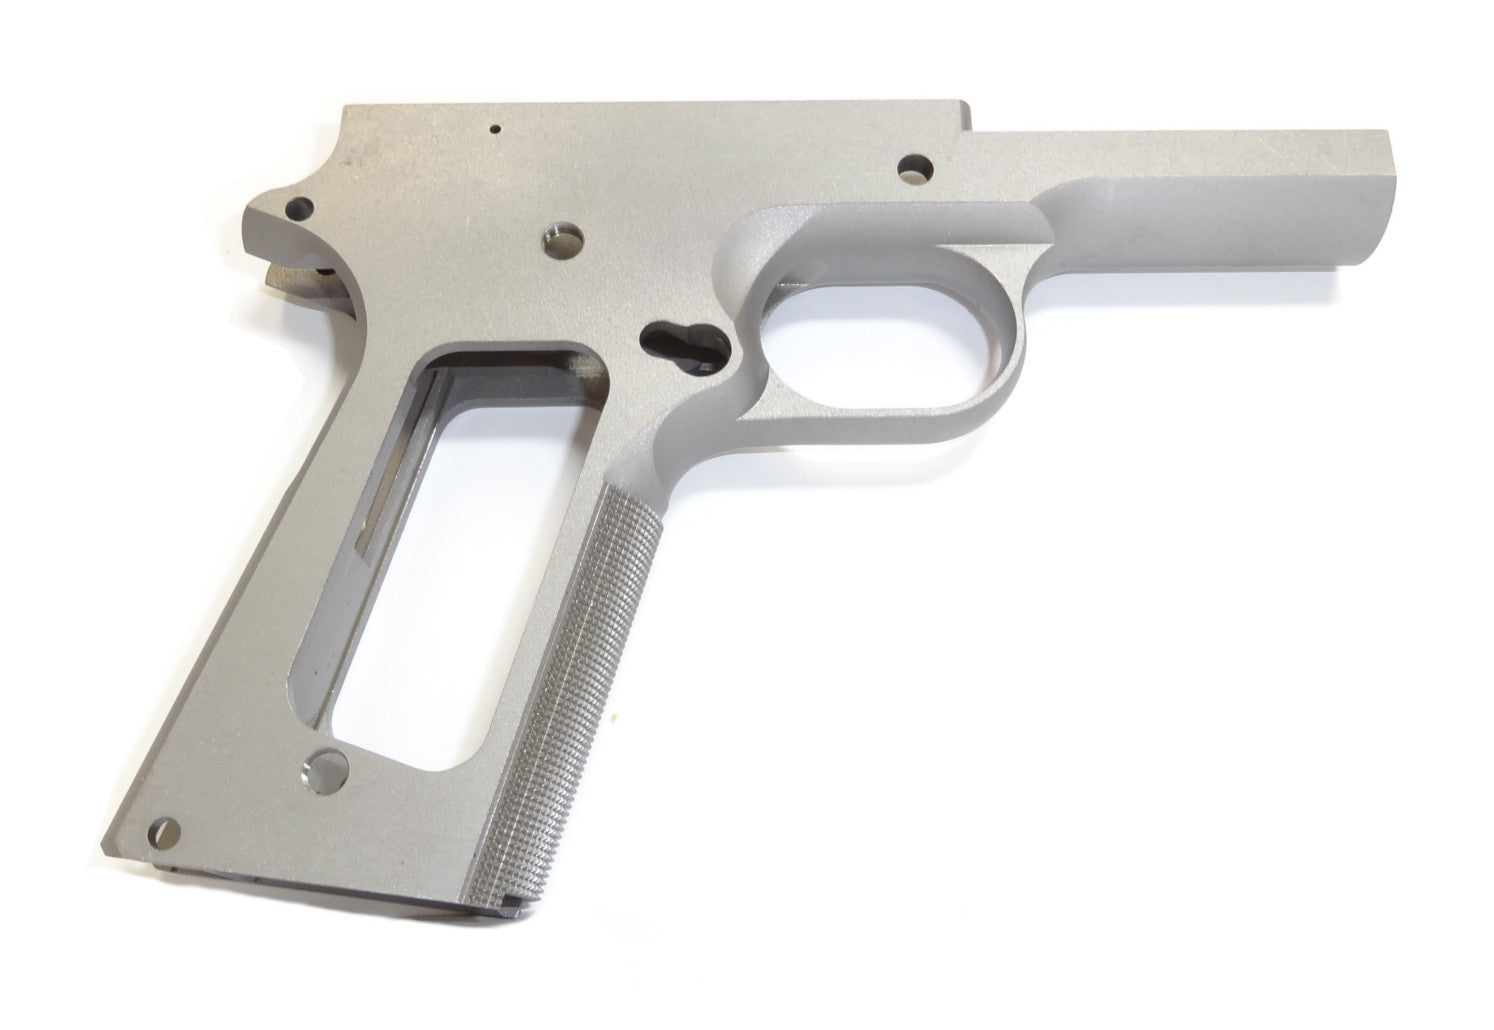 1911 80% FULL SIZE RAMPED FRAME 416R OR 4140 WITH CHECKERED GRIP ...